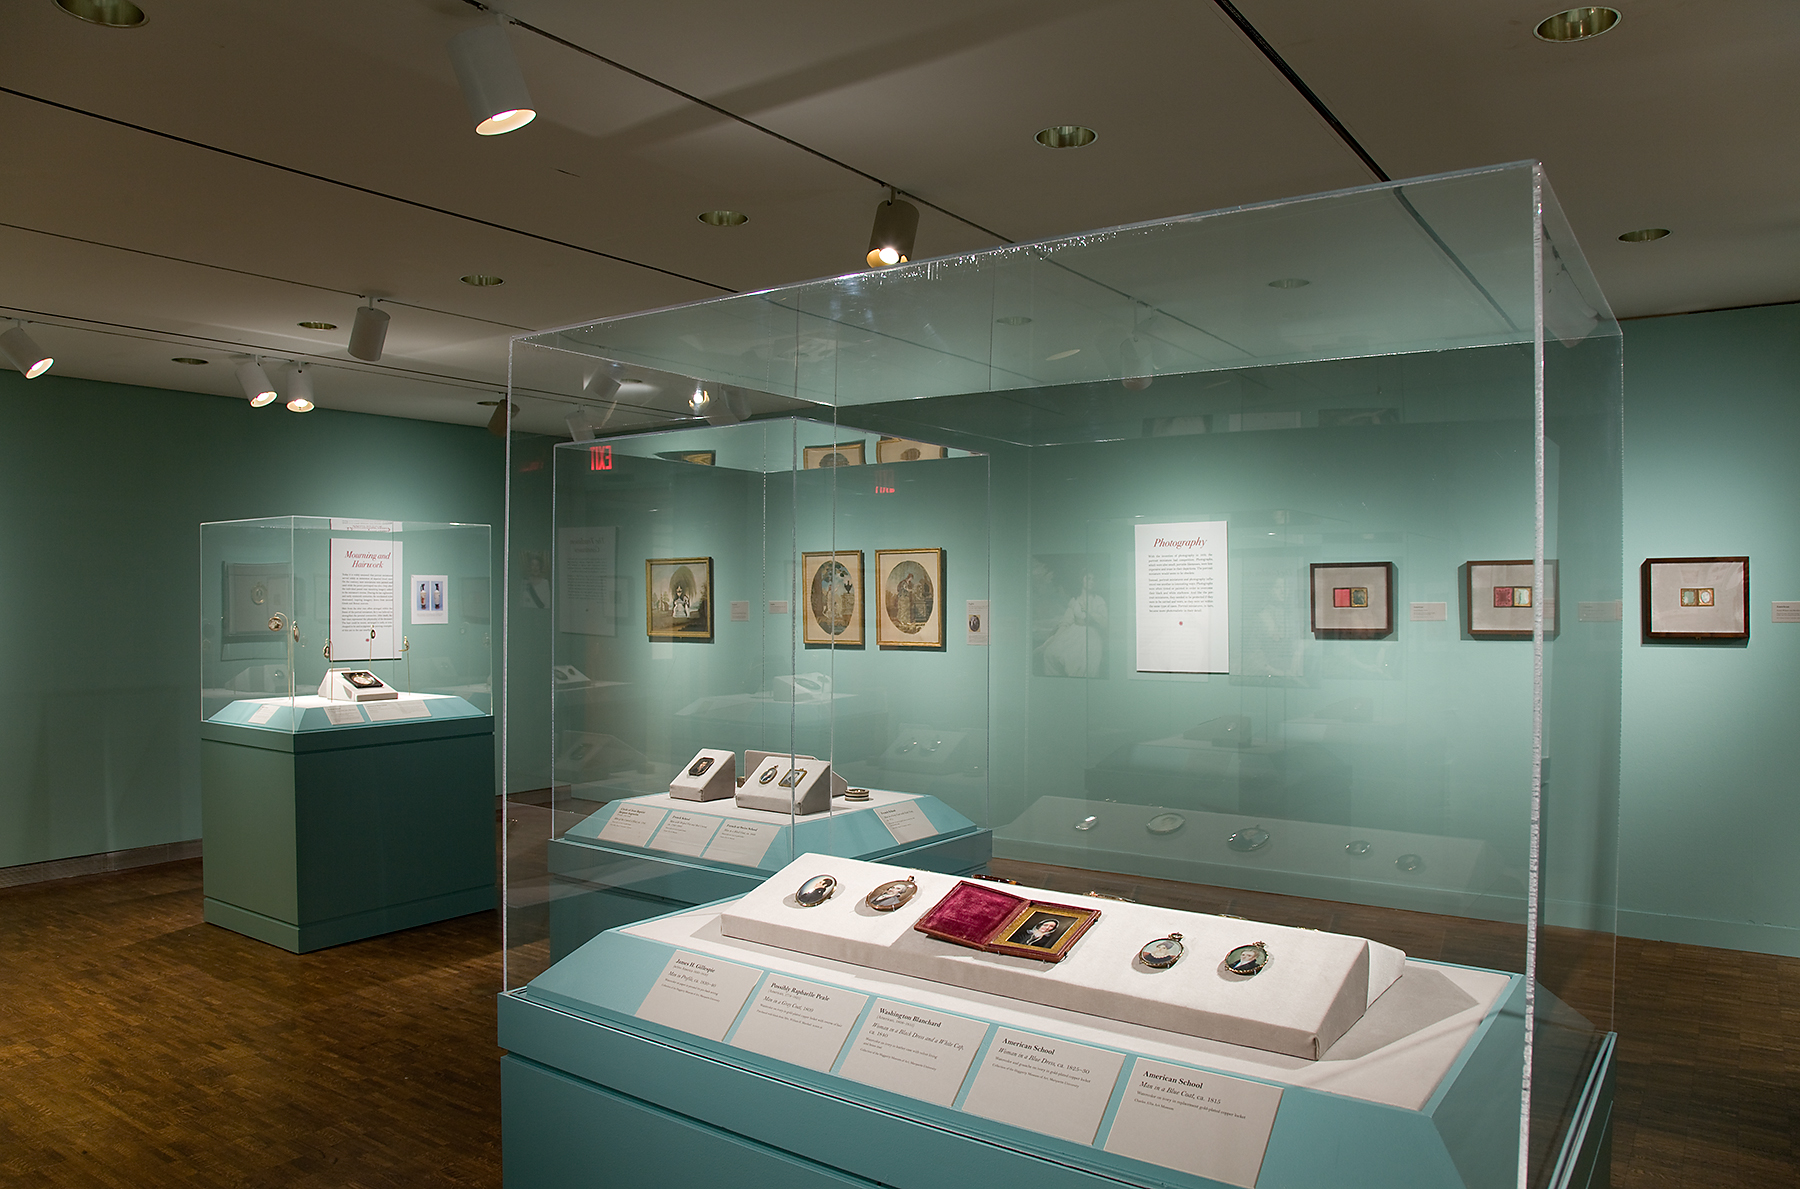 Installation view of Intimate Images of Love and Loss. Photo credit: John R. Glembin.